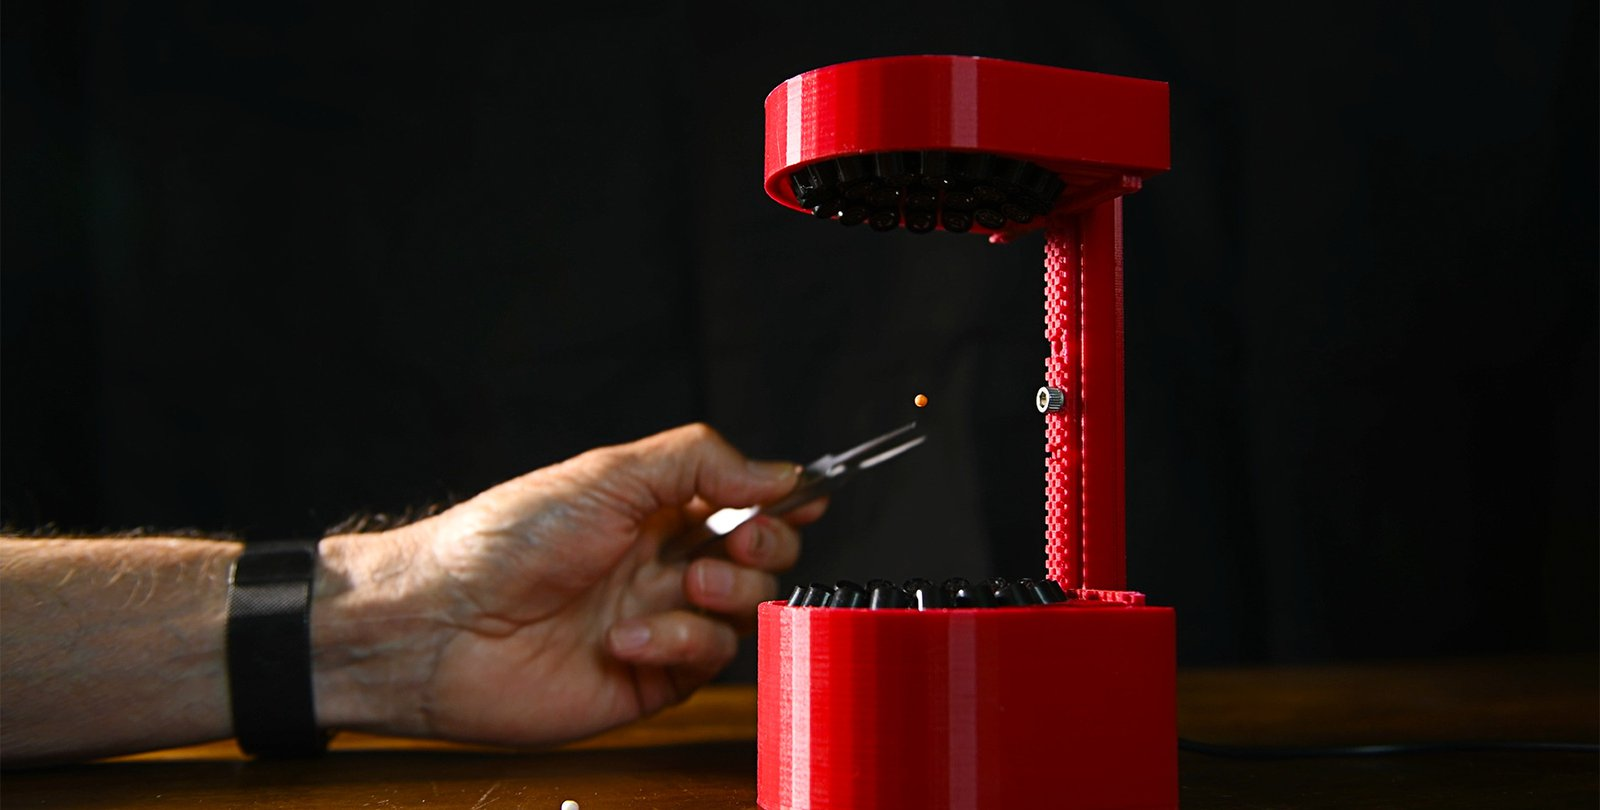 A hand places a pellet into a 3D-printed ultrasonic levitator.